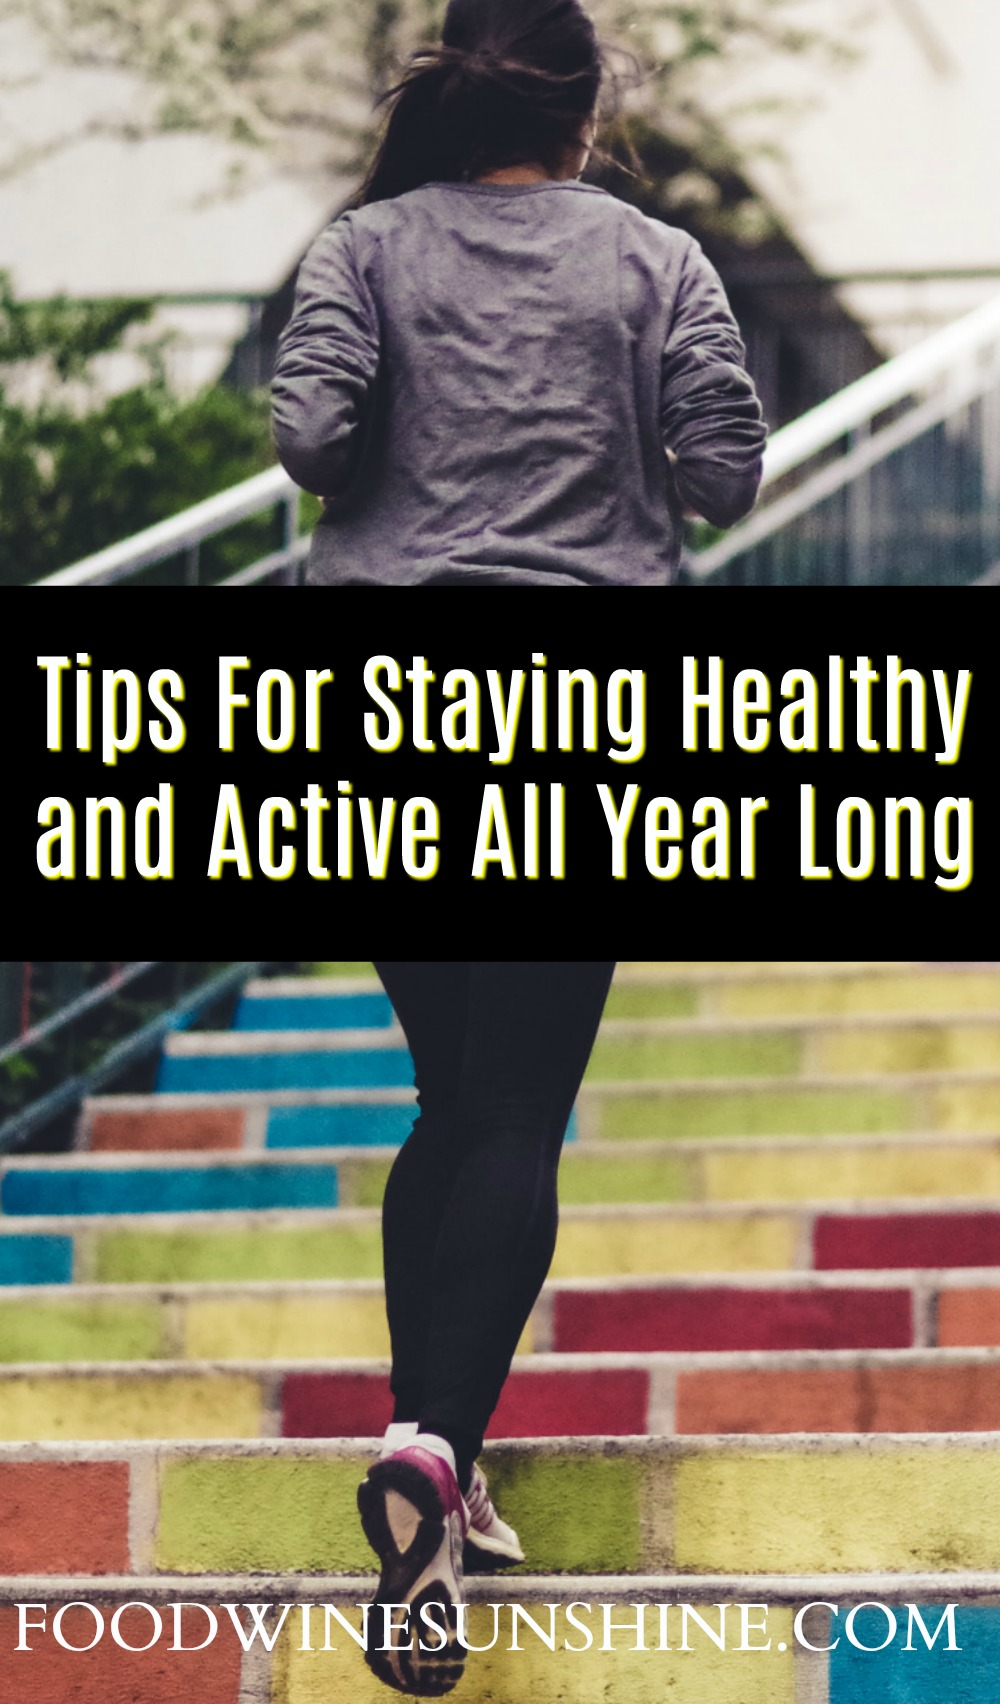 Tips For Staying Healthy and Active All Year